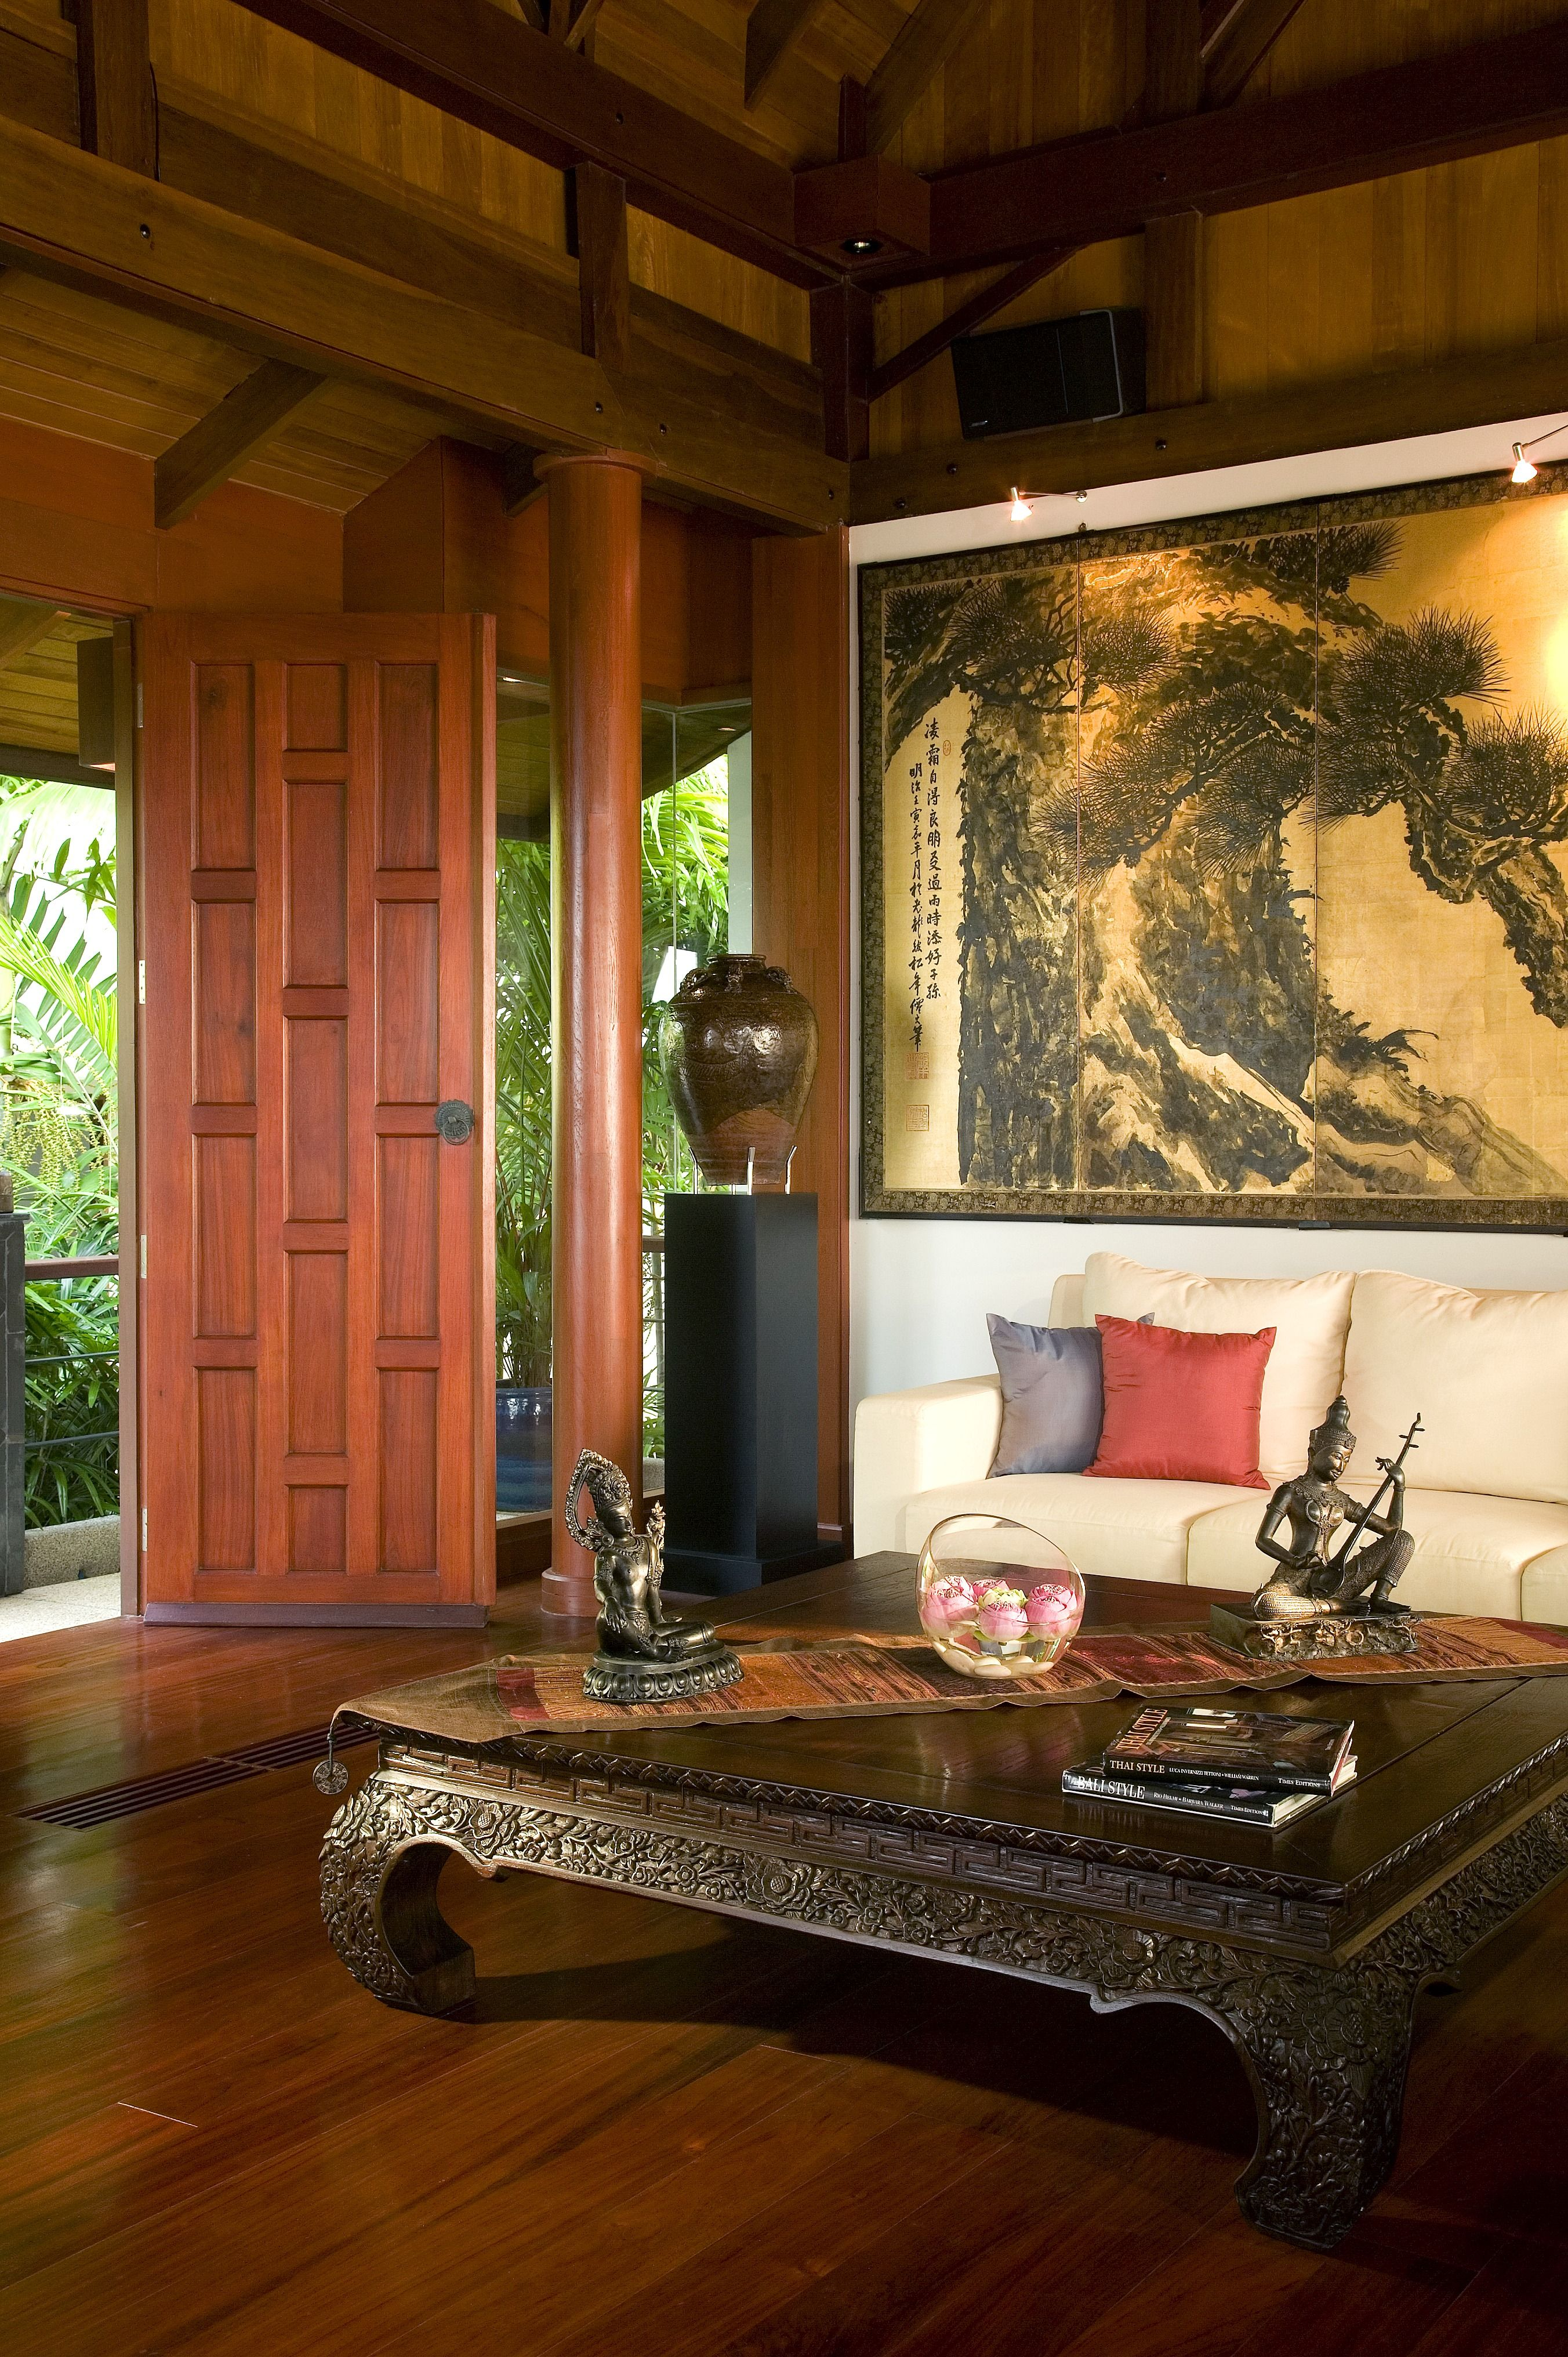 Asian Style Home Decor An Asian Style Living Room With A Tall Stained Wood